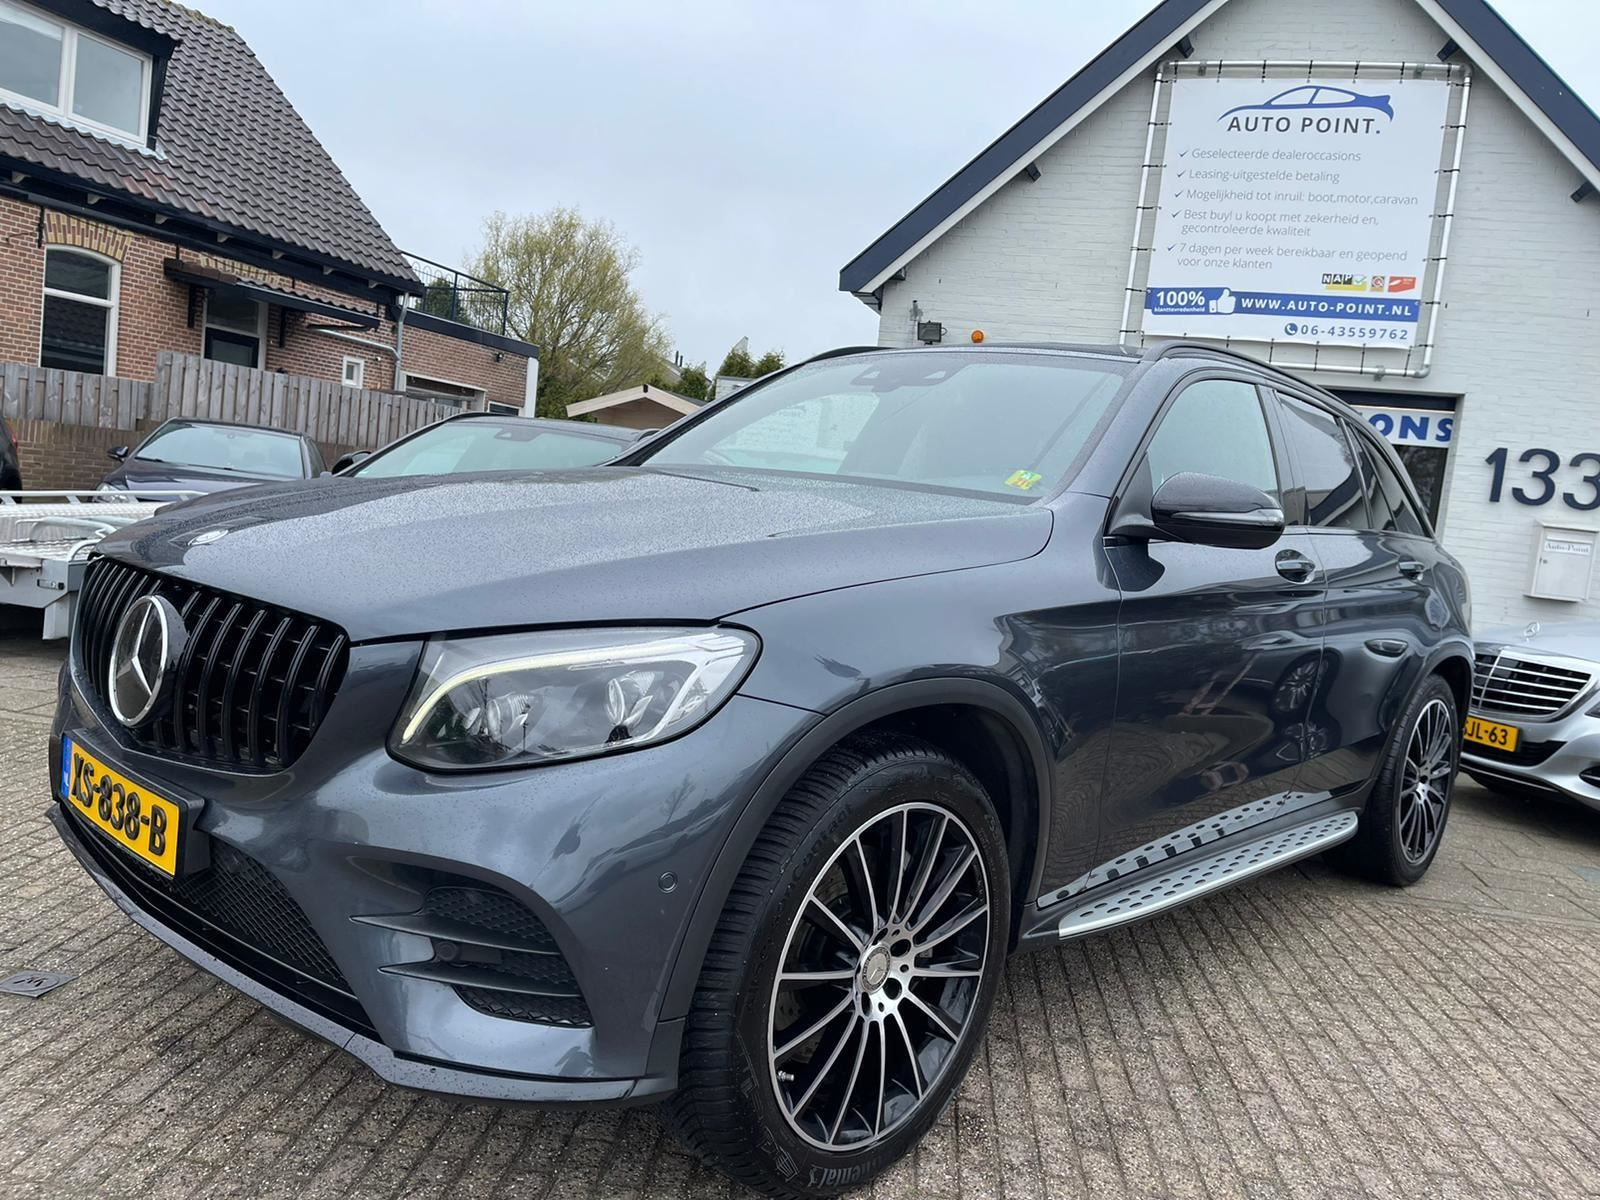 Mercedes-Benz GLC-klasse occasion - Auto Point